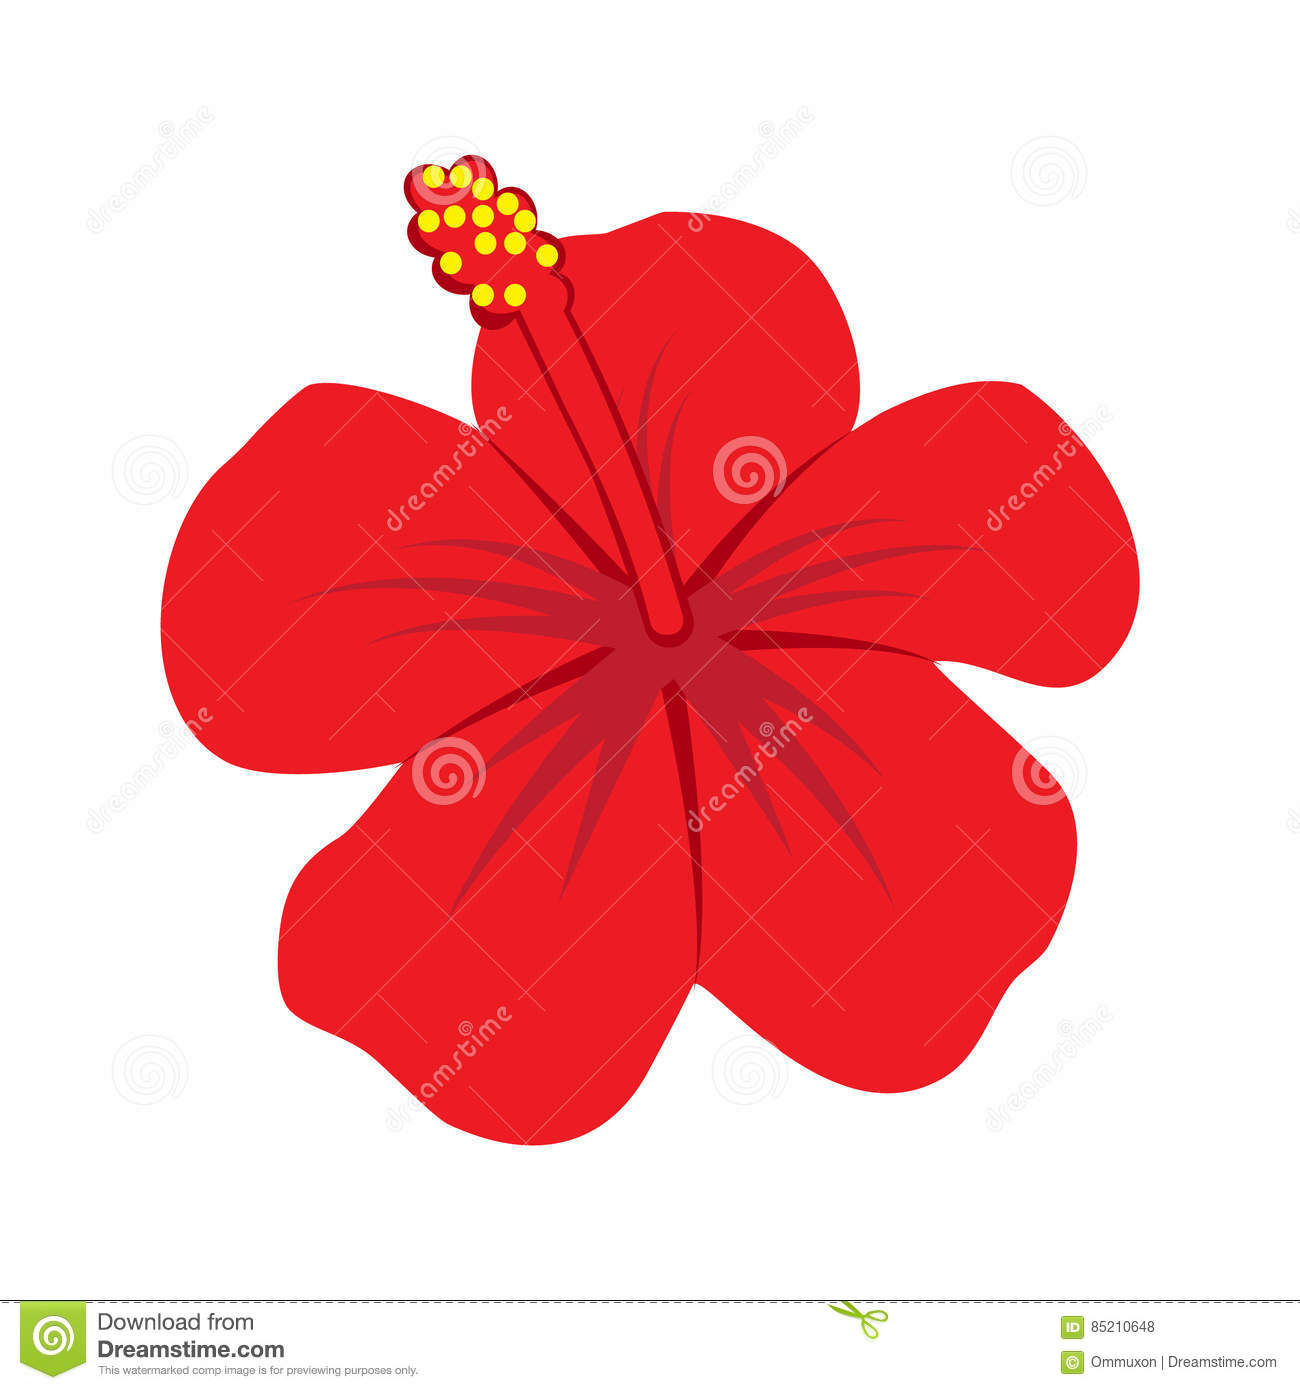 Hibiscus Flower Icon Illustration Stock Vector Illustration Of